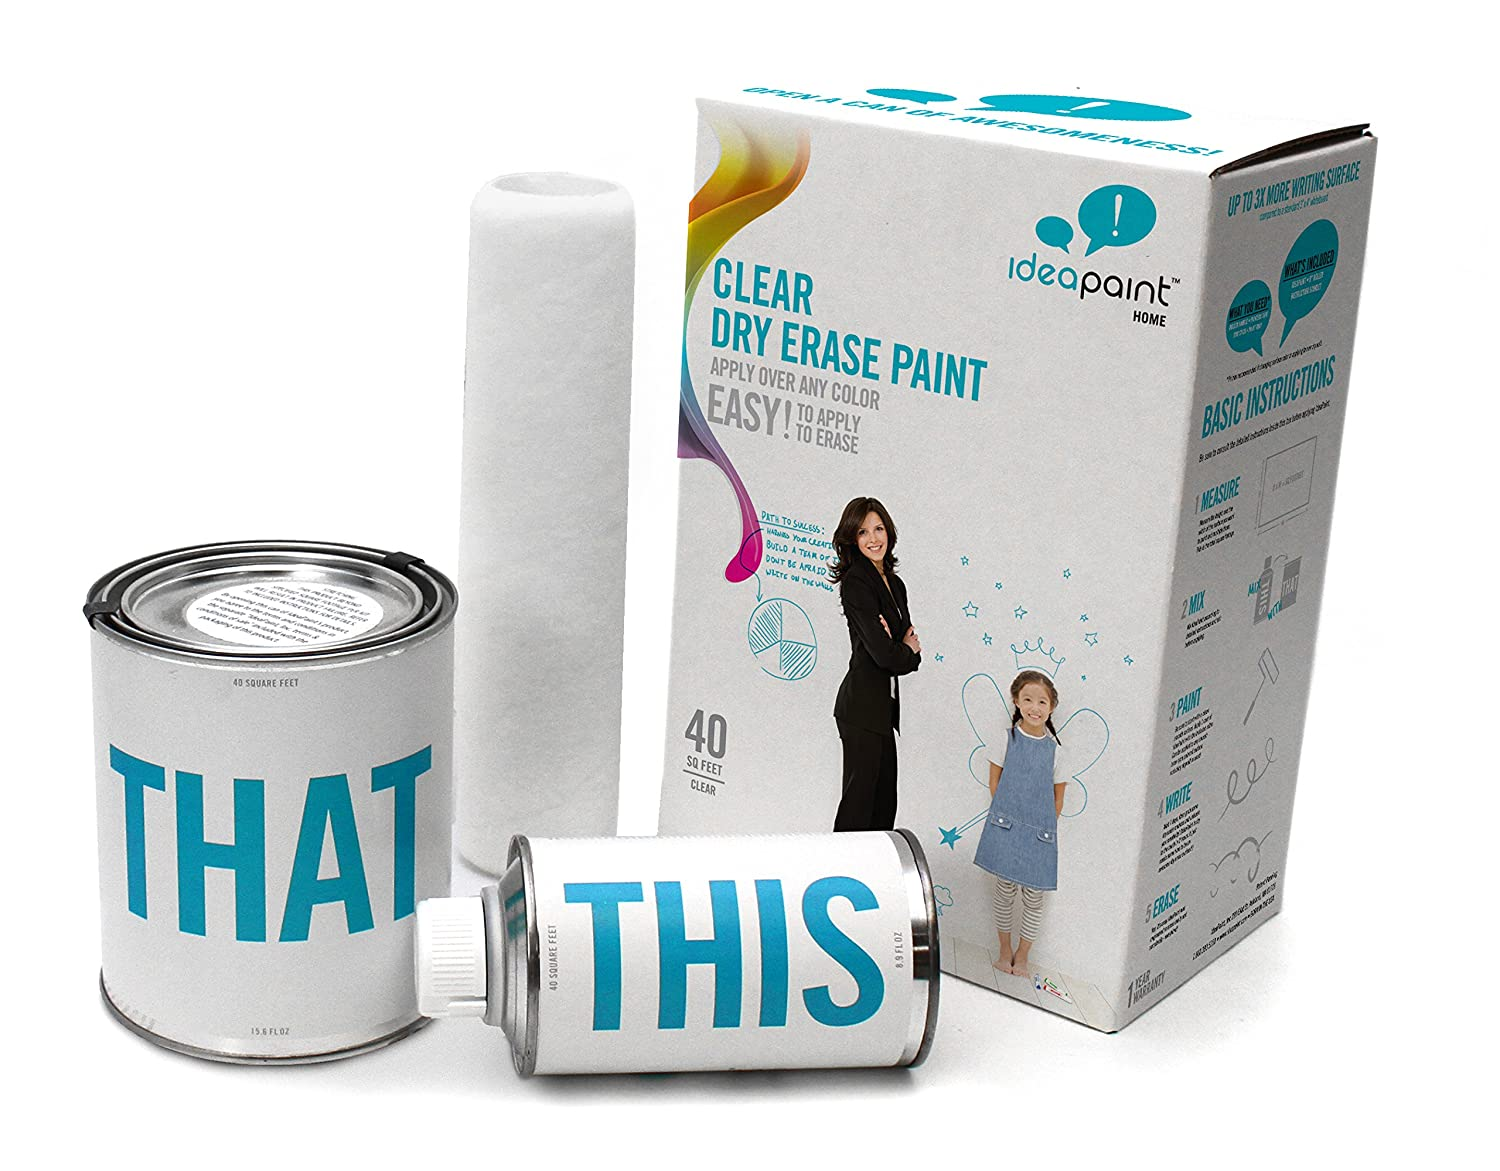 IdeaPaint Home Clear Universal Dry Erase Paint Kit, 40 sq ft   Erasable Wall or Surface Canvas